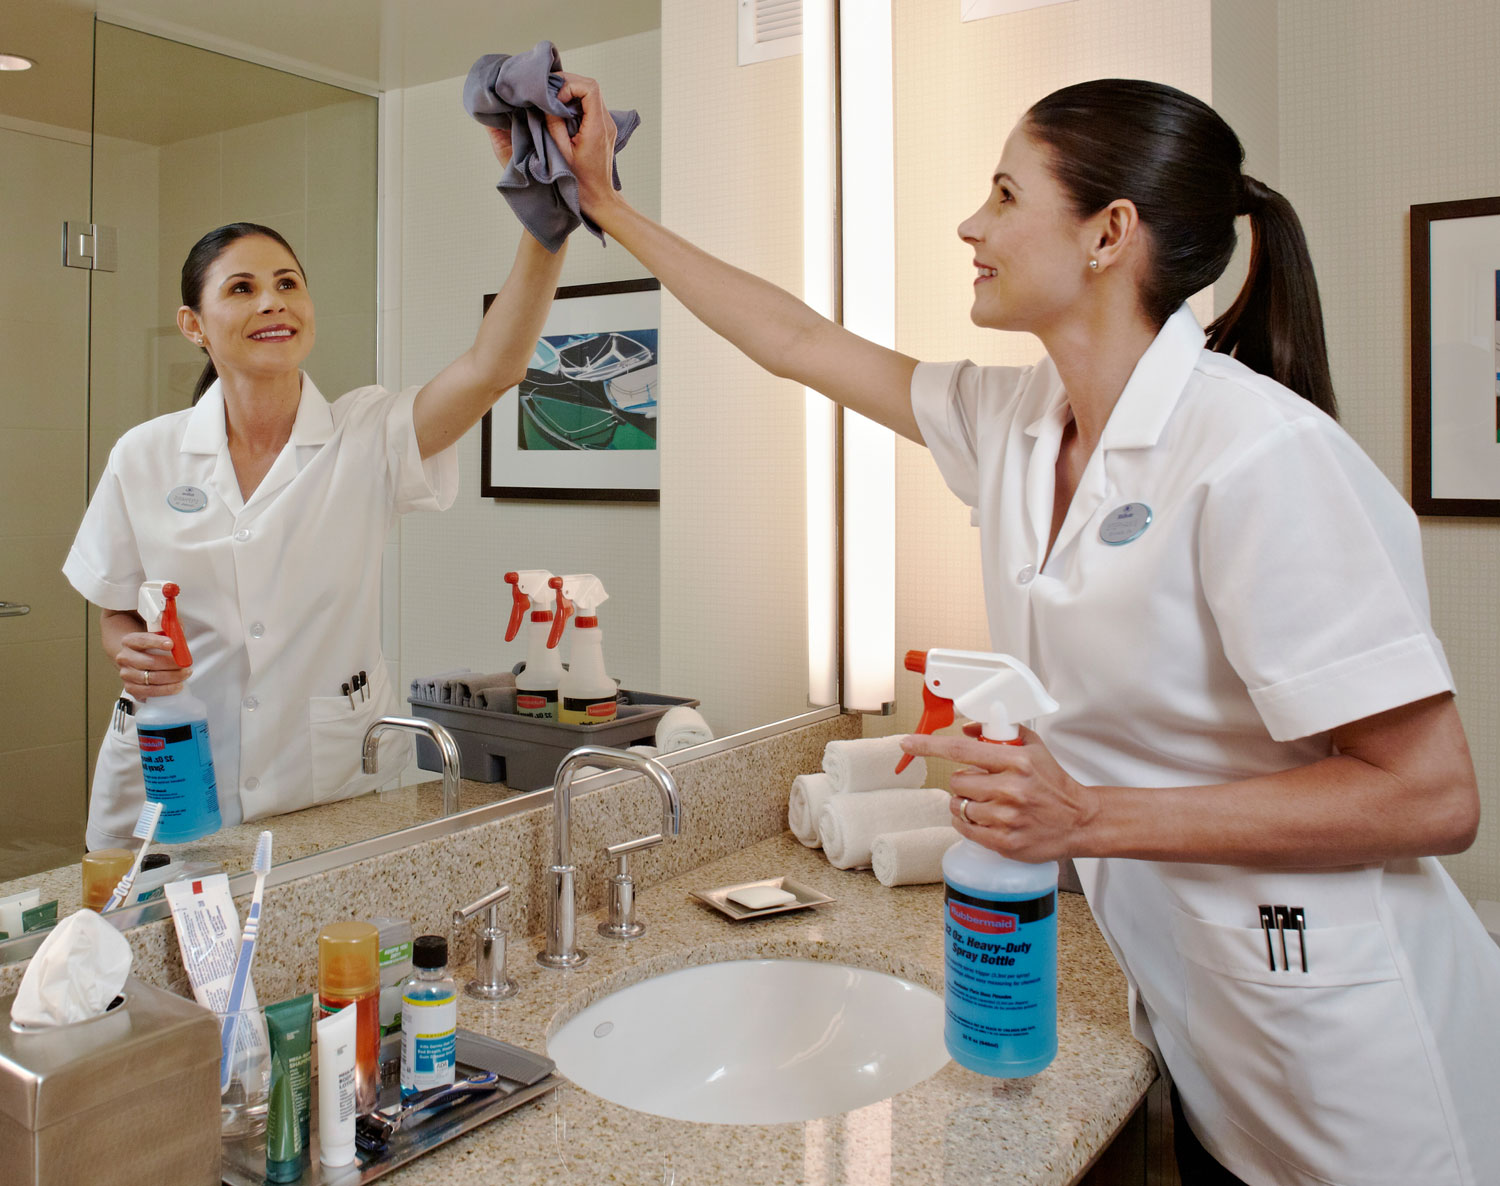 Staying clean doesn't have to mean chemicals